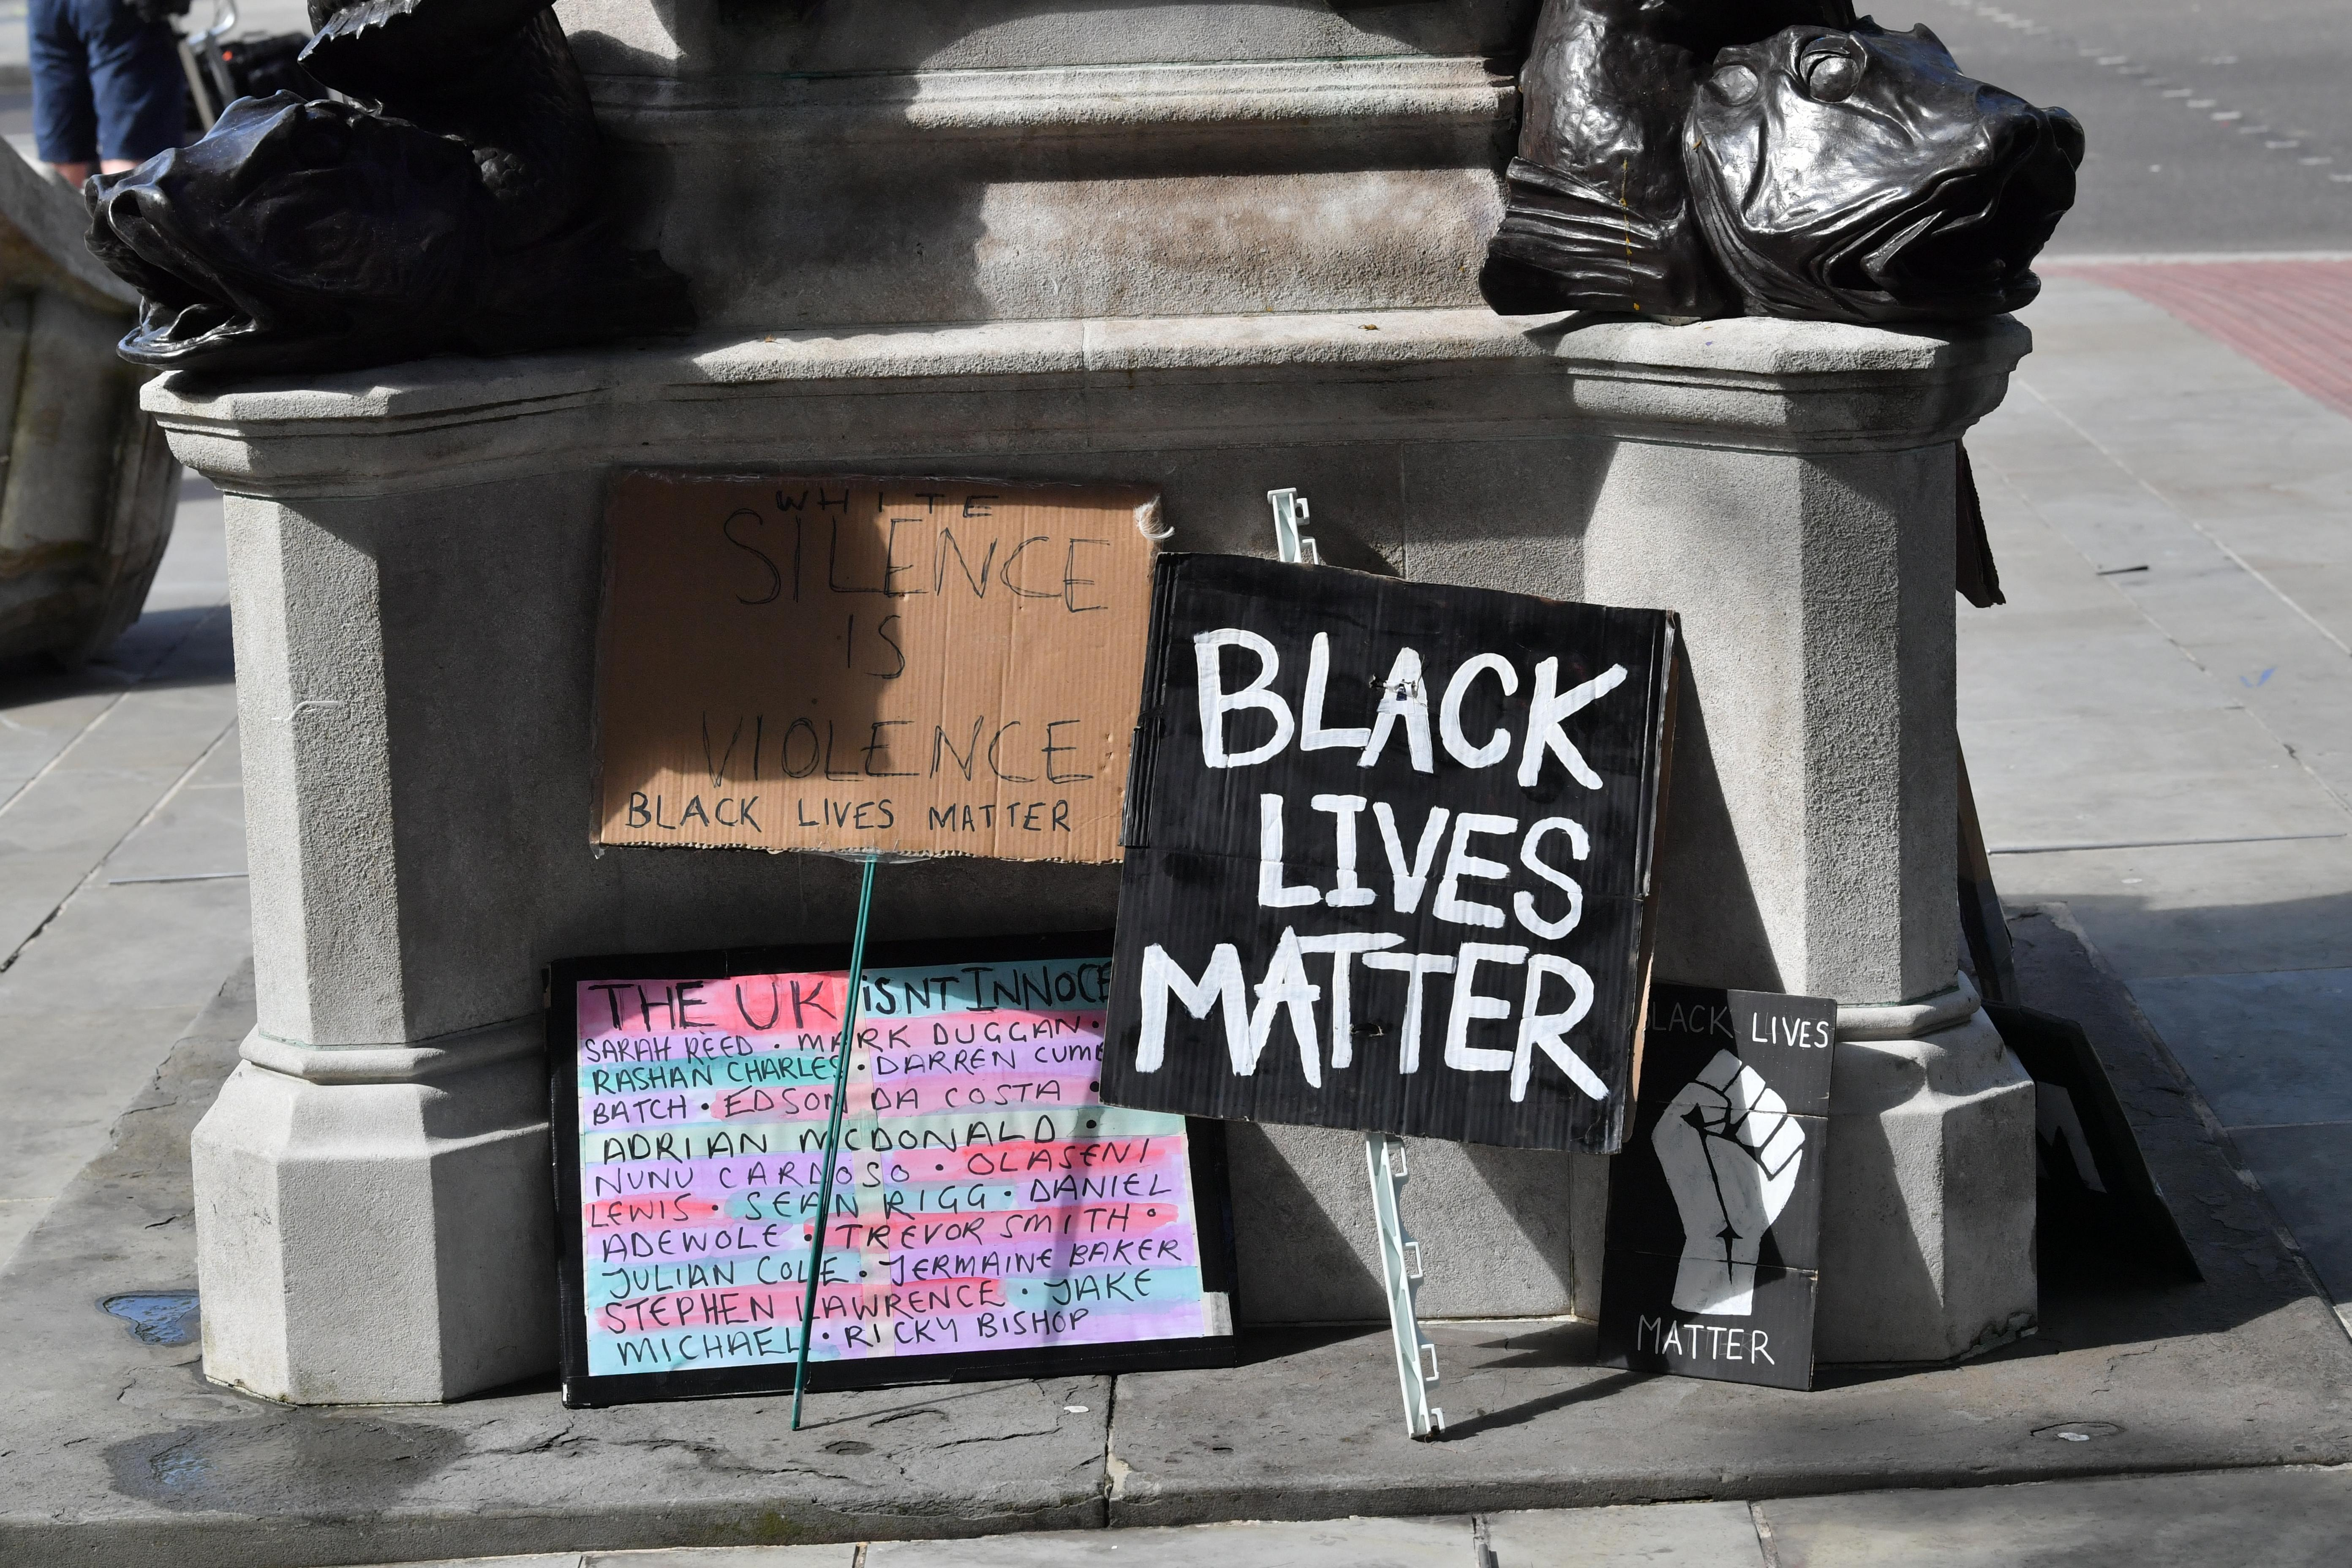 Signs by the empty plinth where the statue of Edward Colston in Bristol once stood after it was taken down during a Black Lives Matter protest on Sunday. The protests were sparked by the death of George Floyd, who was killed on May 25 while in police custody in the US city of Minneapolis.